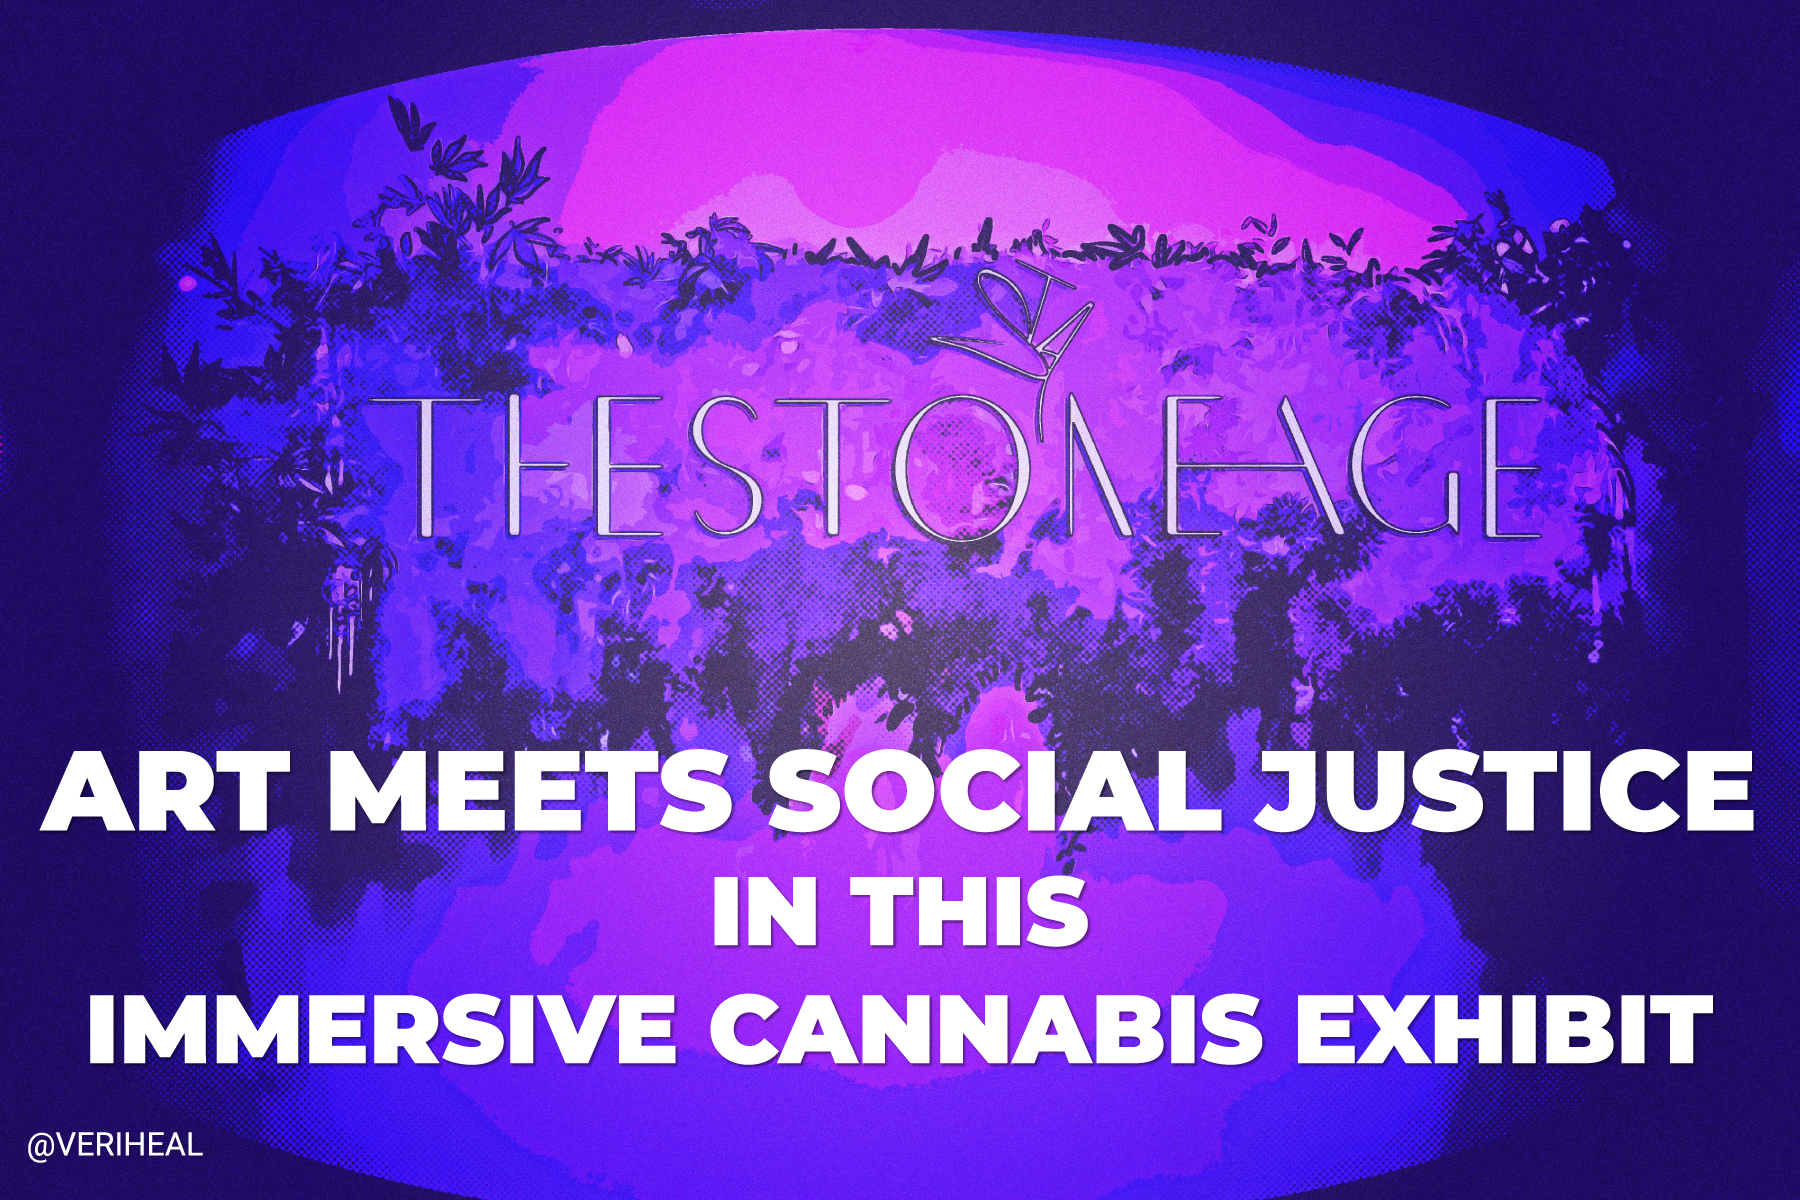 Art Meets Social Justice in 'The Stone Age,' NYC's Immersive Cannabis Exhibit